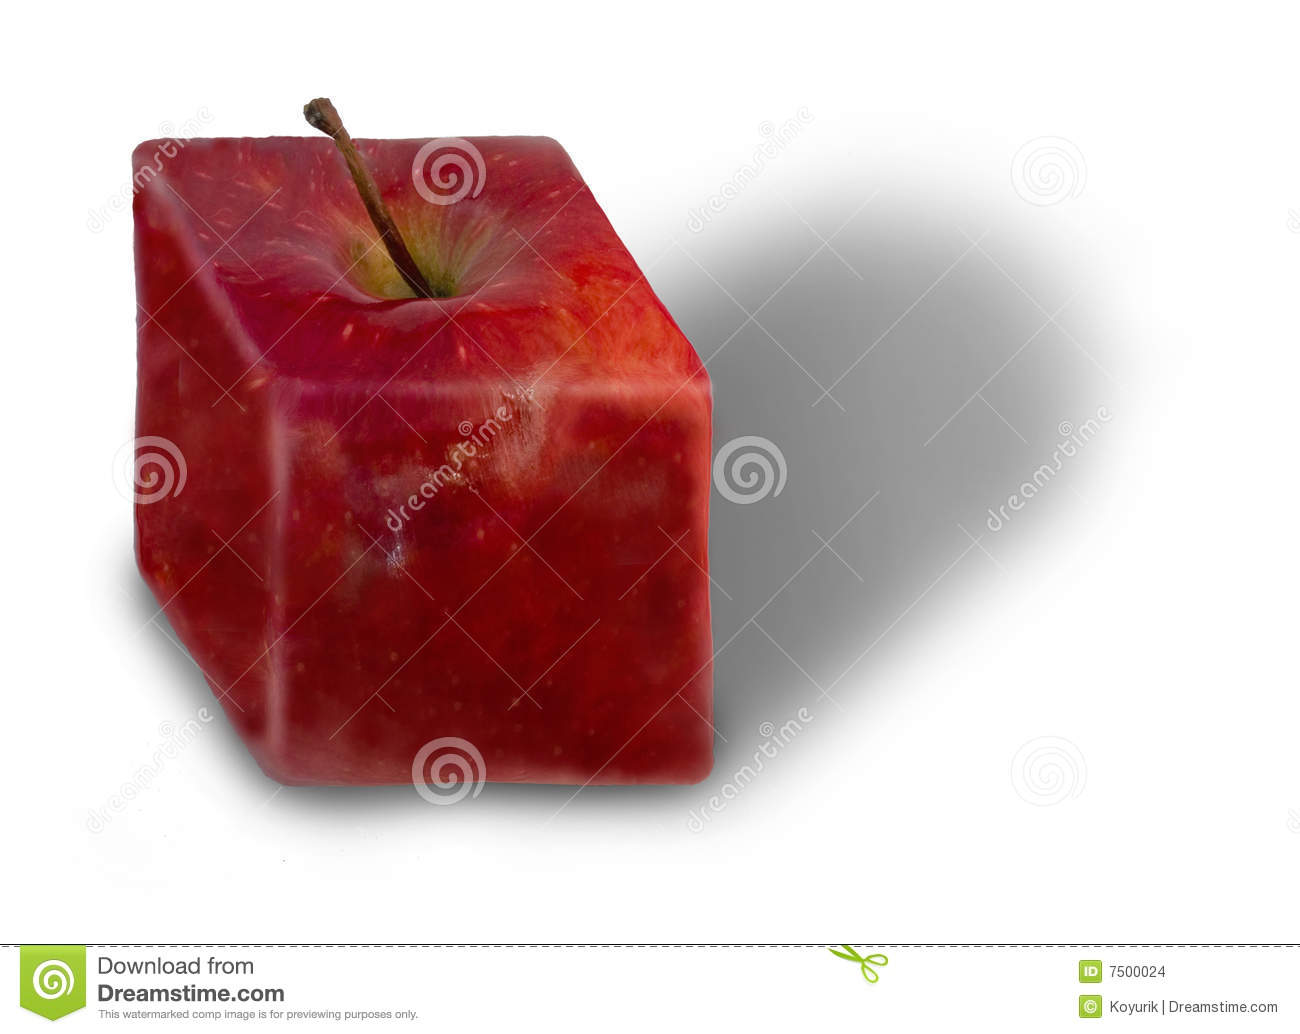 Square Fruit Stock Images - Image: 7500024